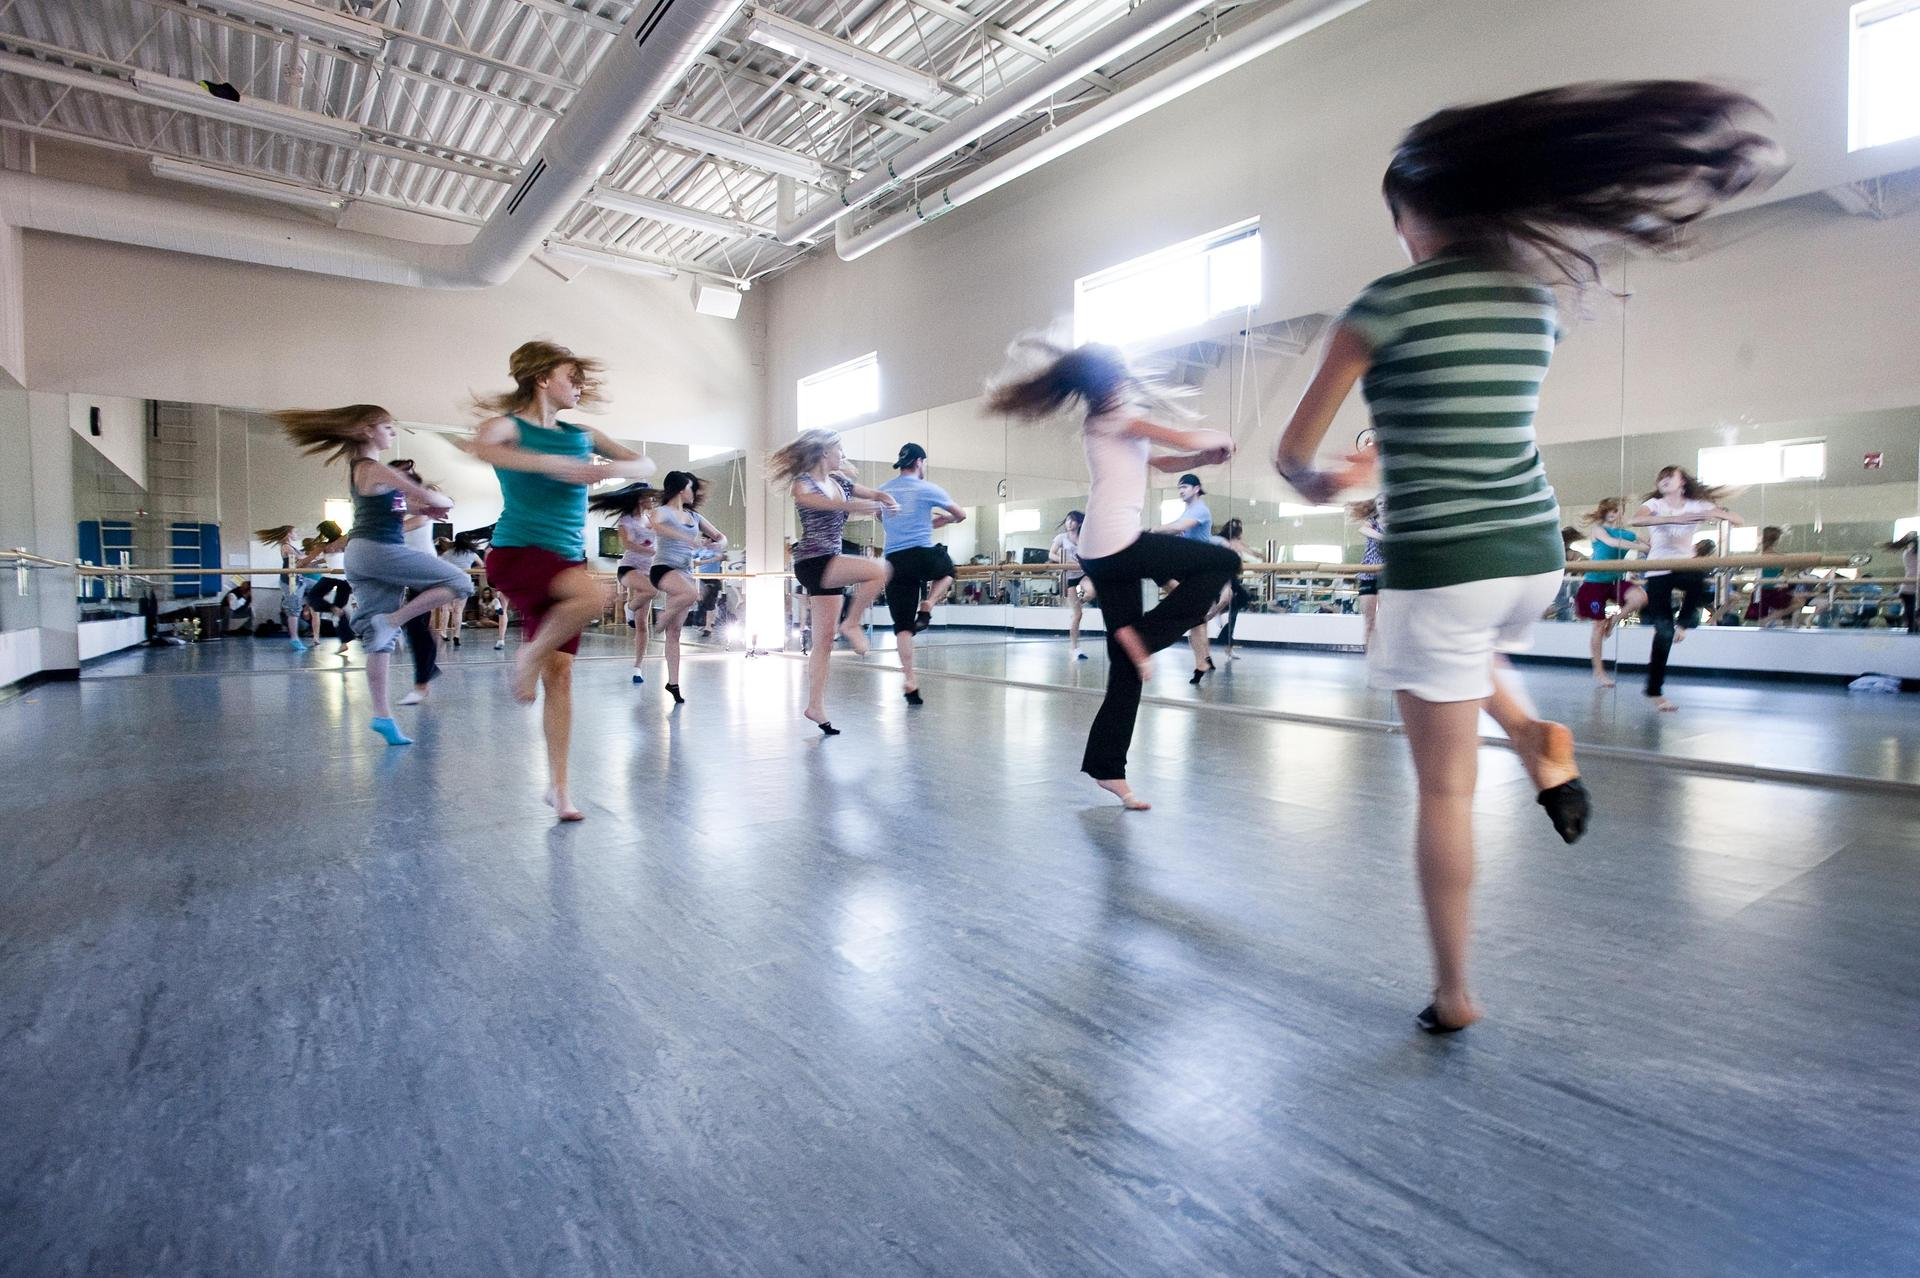 Students dancing in Dance Room with surrounding mirrors